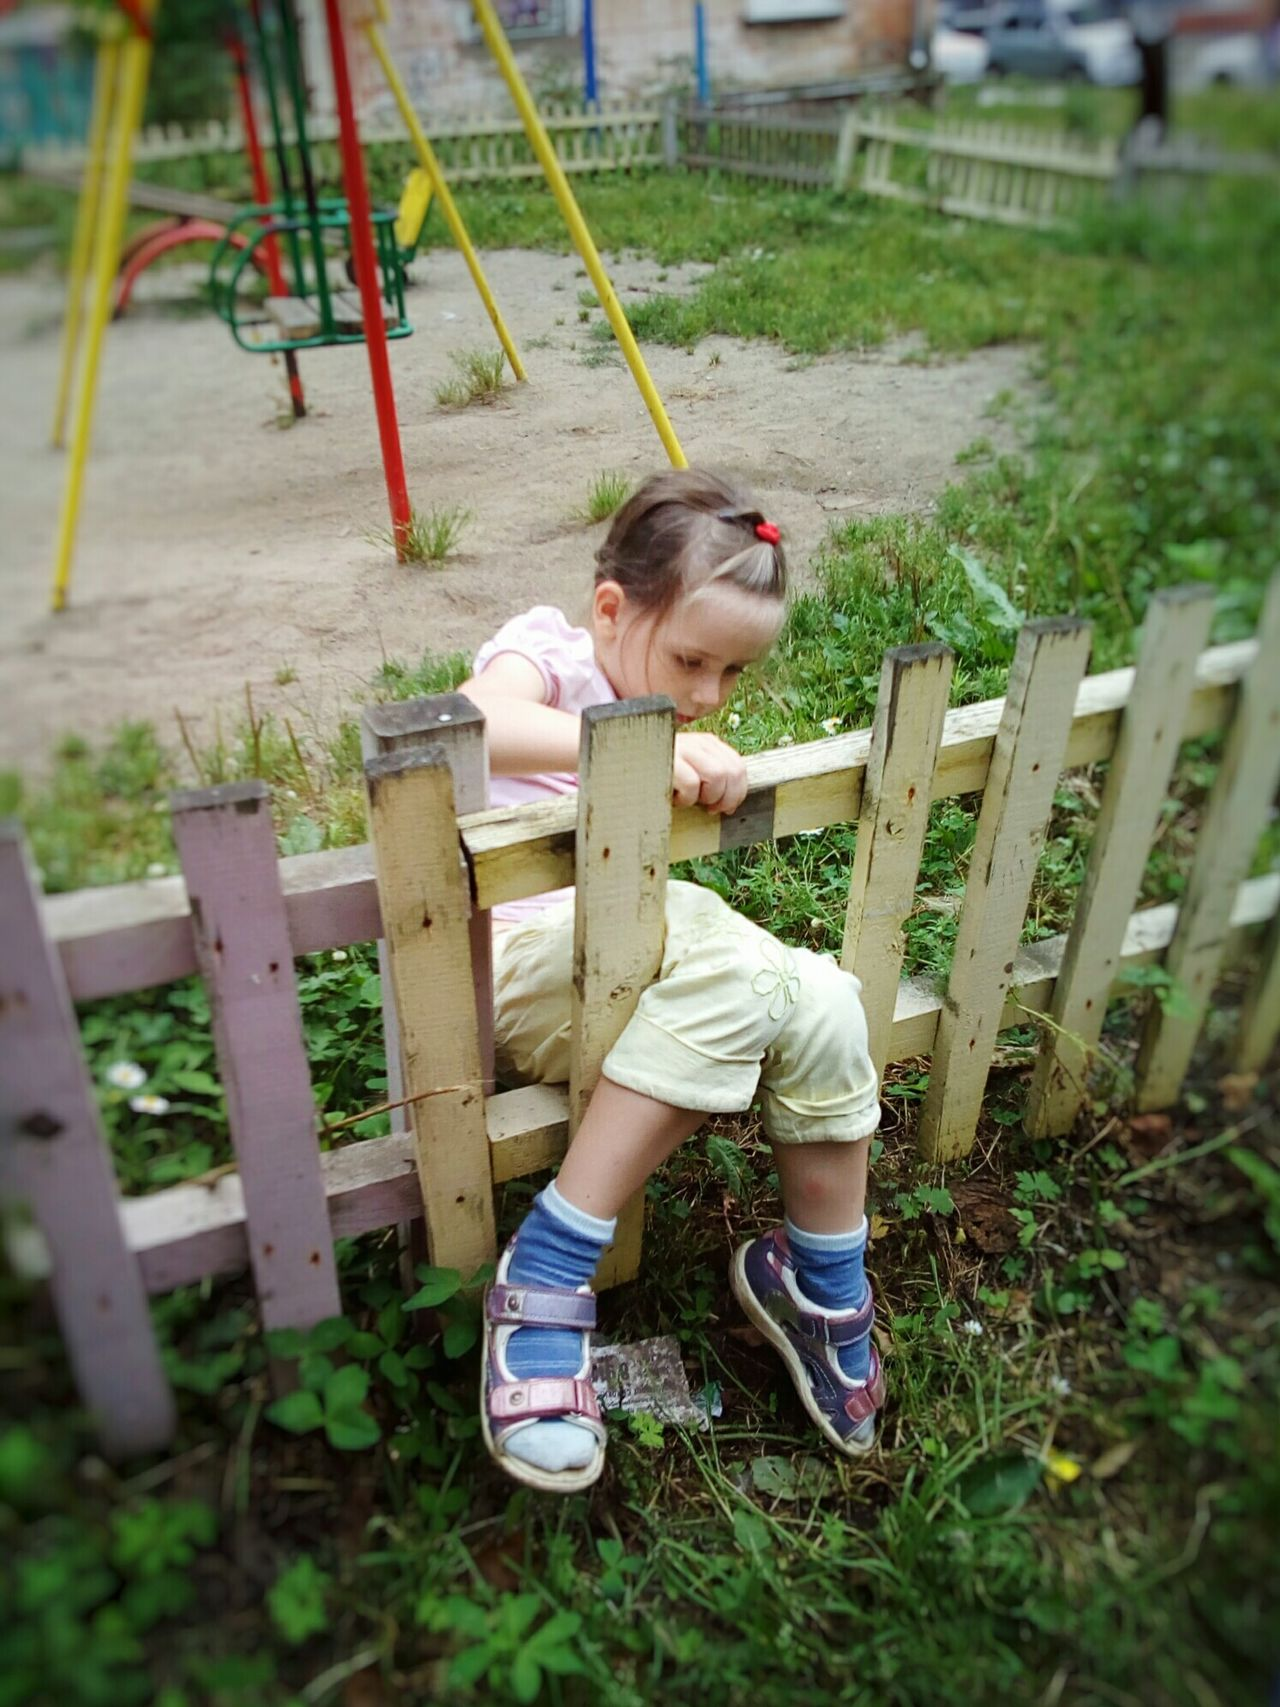 """Profitable busines"" Girl Child Childhood Playgarden Fence Hole In Fence Yard Playing Fun Summer August"